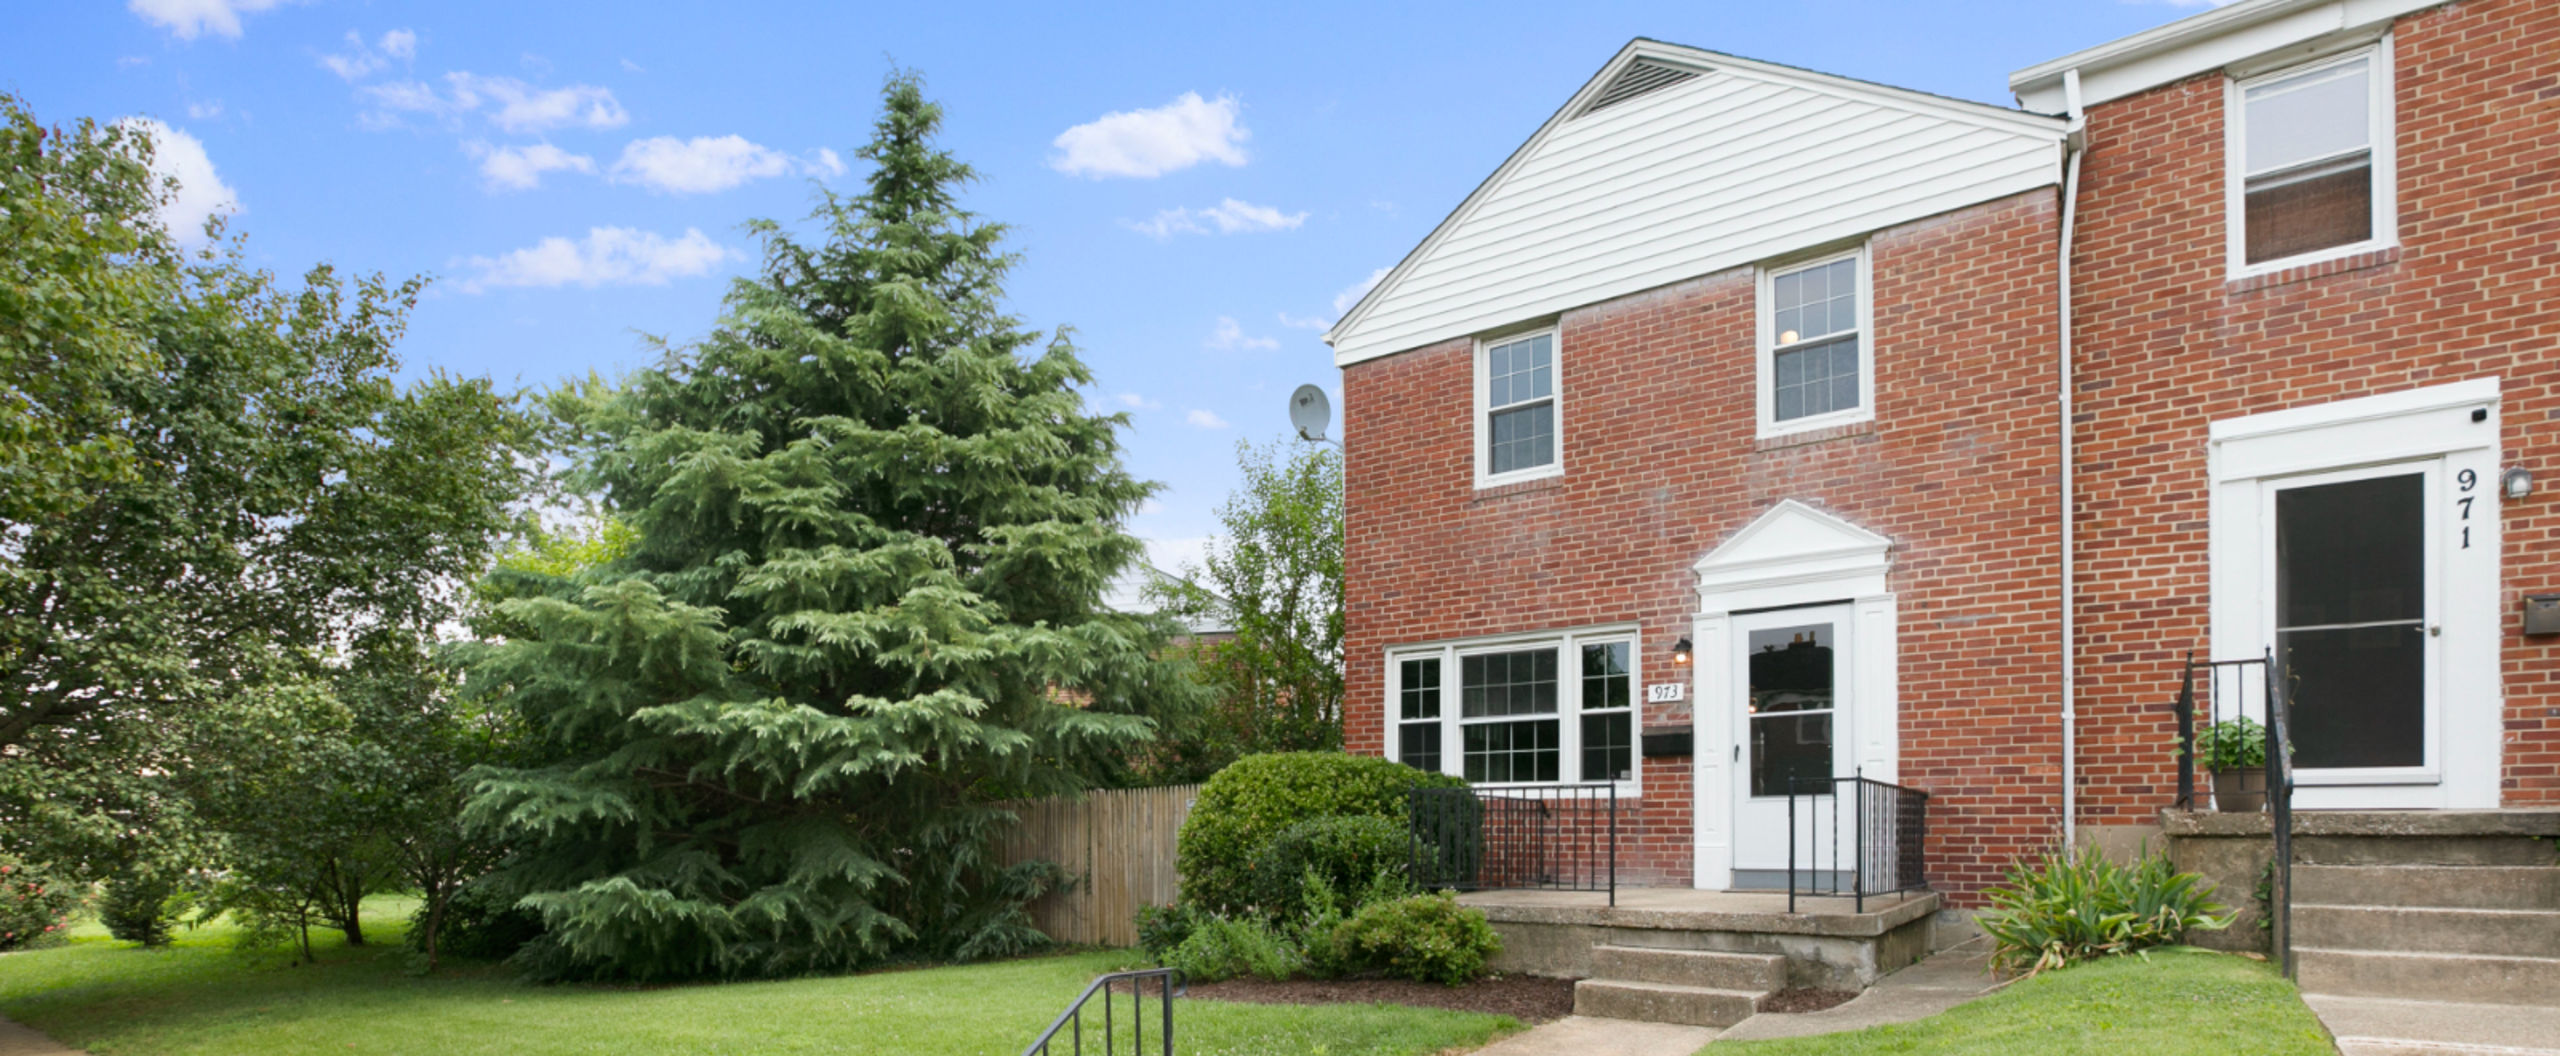 973 Radcliffe Road - Under Contract